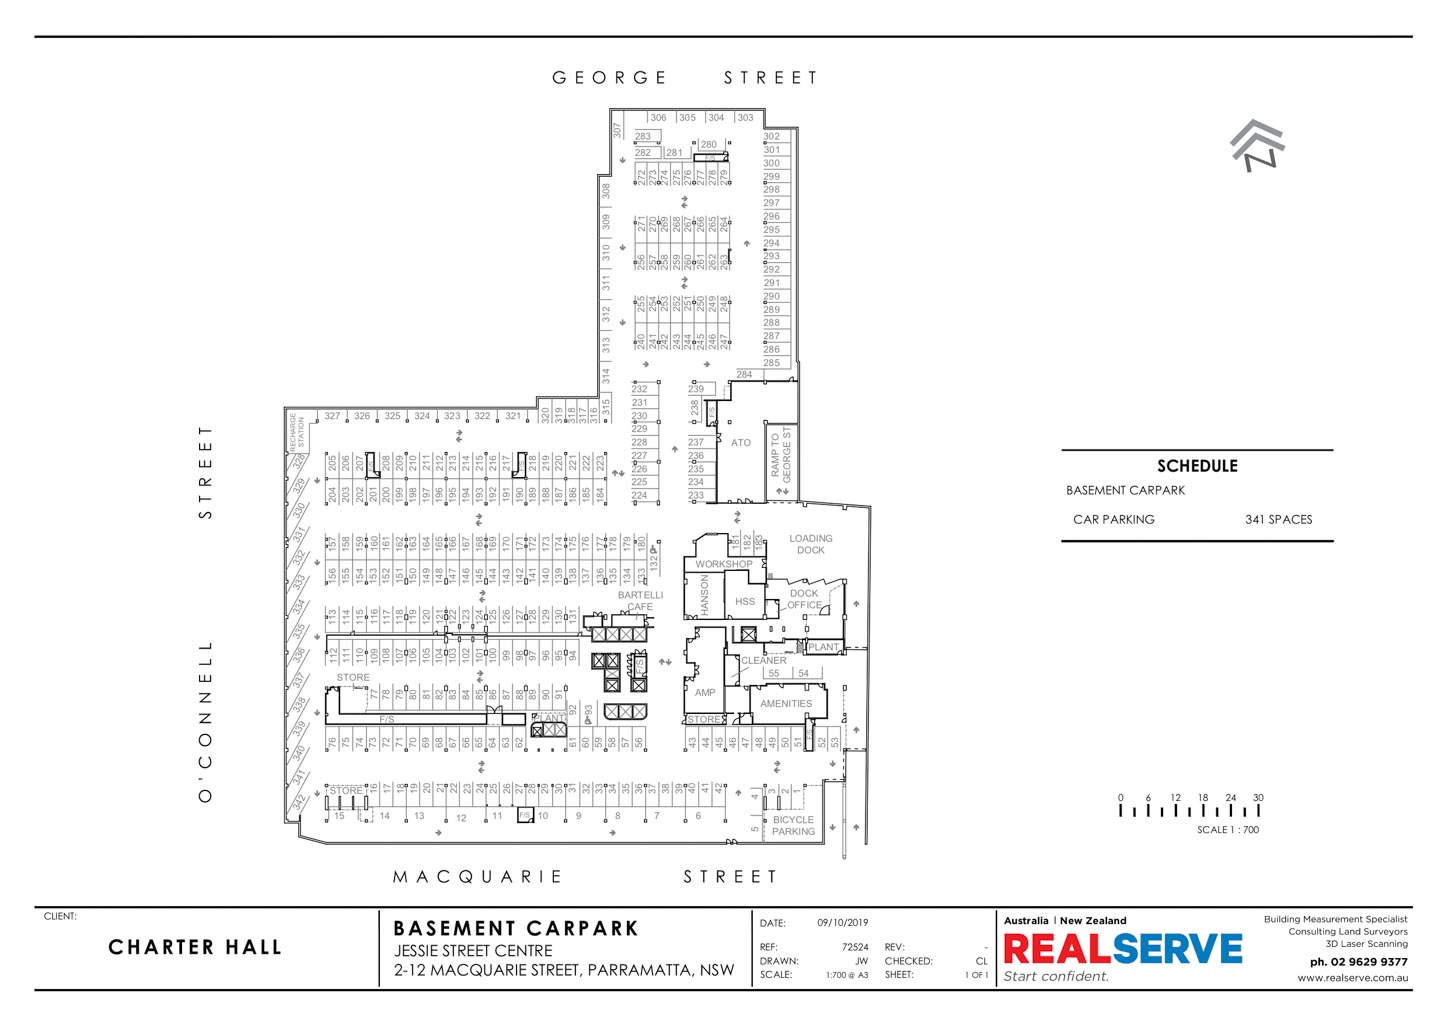 CAR PARKING PLAN SAMPLE FROM REALSERVE FOR A PARRAMATTA PROPERTY